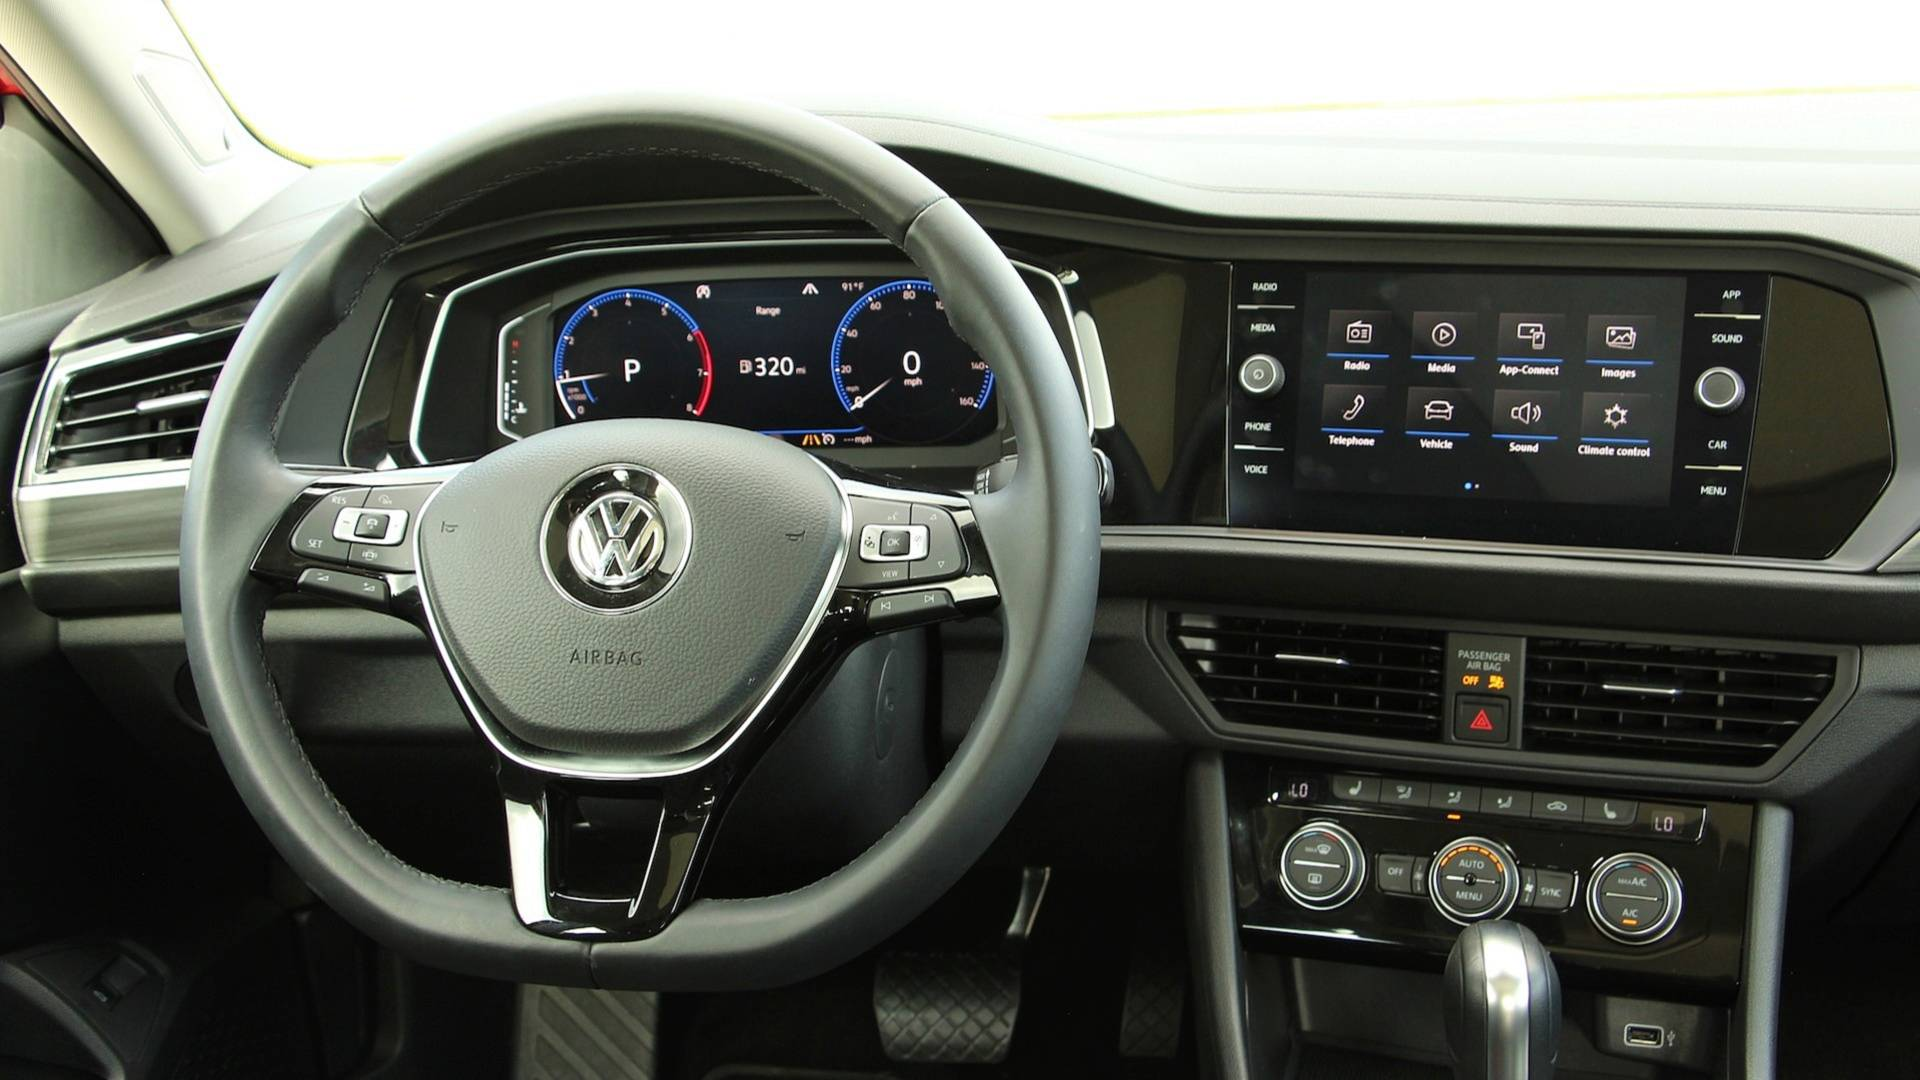 2019-volkswagen-jetta-review-13.jpg